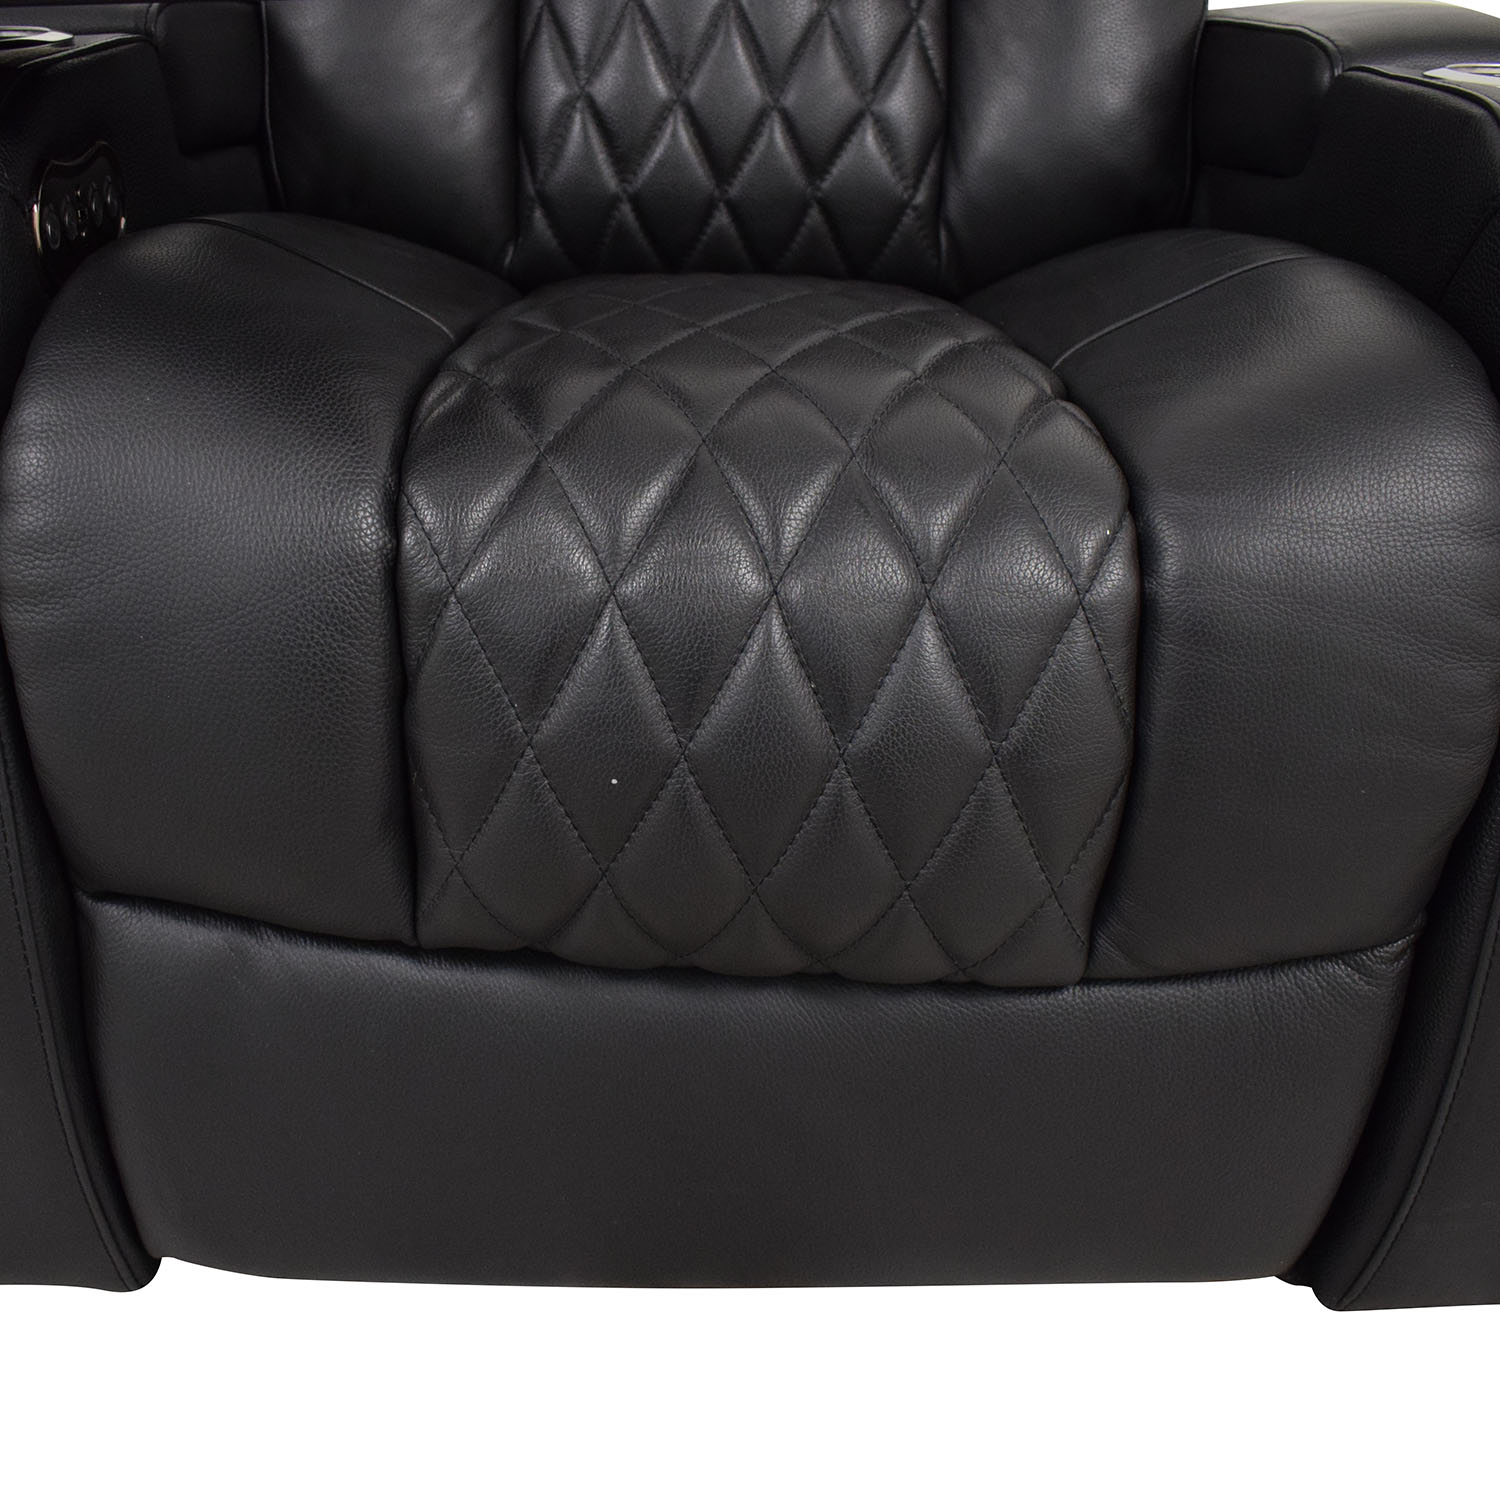 Seatcraft Seatcraft Diamante Home Theater Seating Leather Power Recliner black